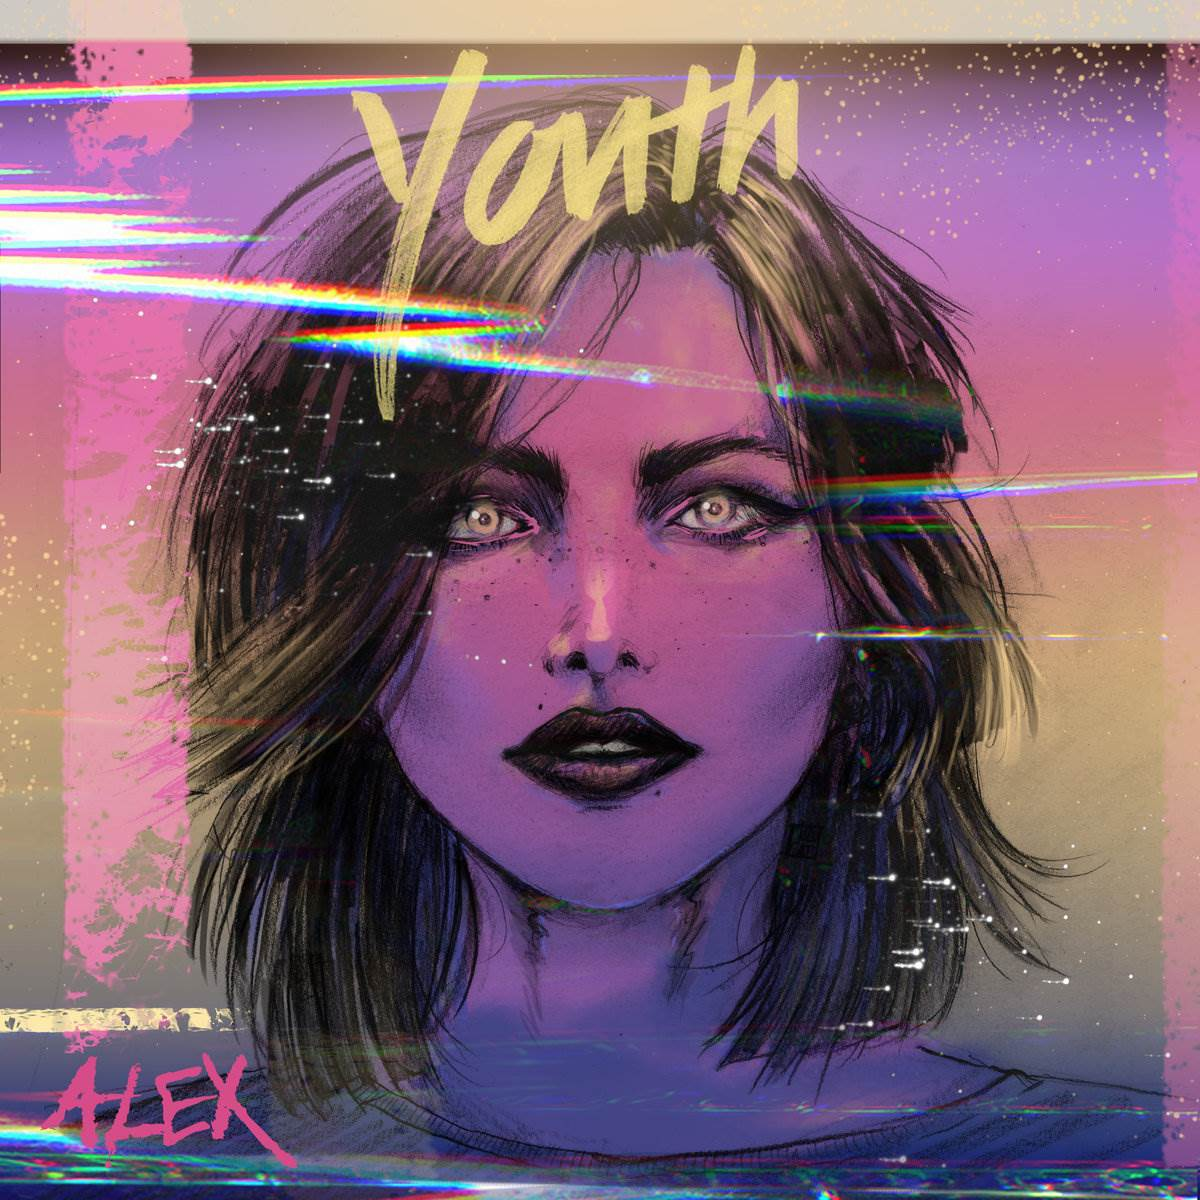 a0162066701 10 - ALEX - Youth (feat. Rachel McAlpine)